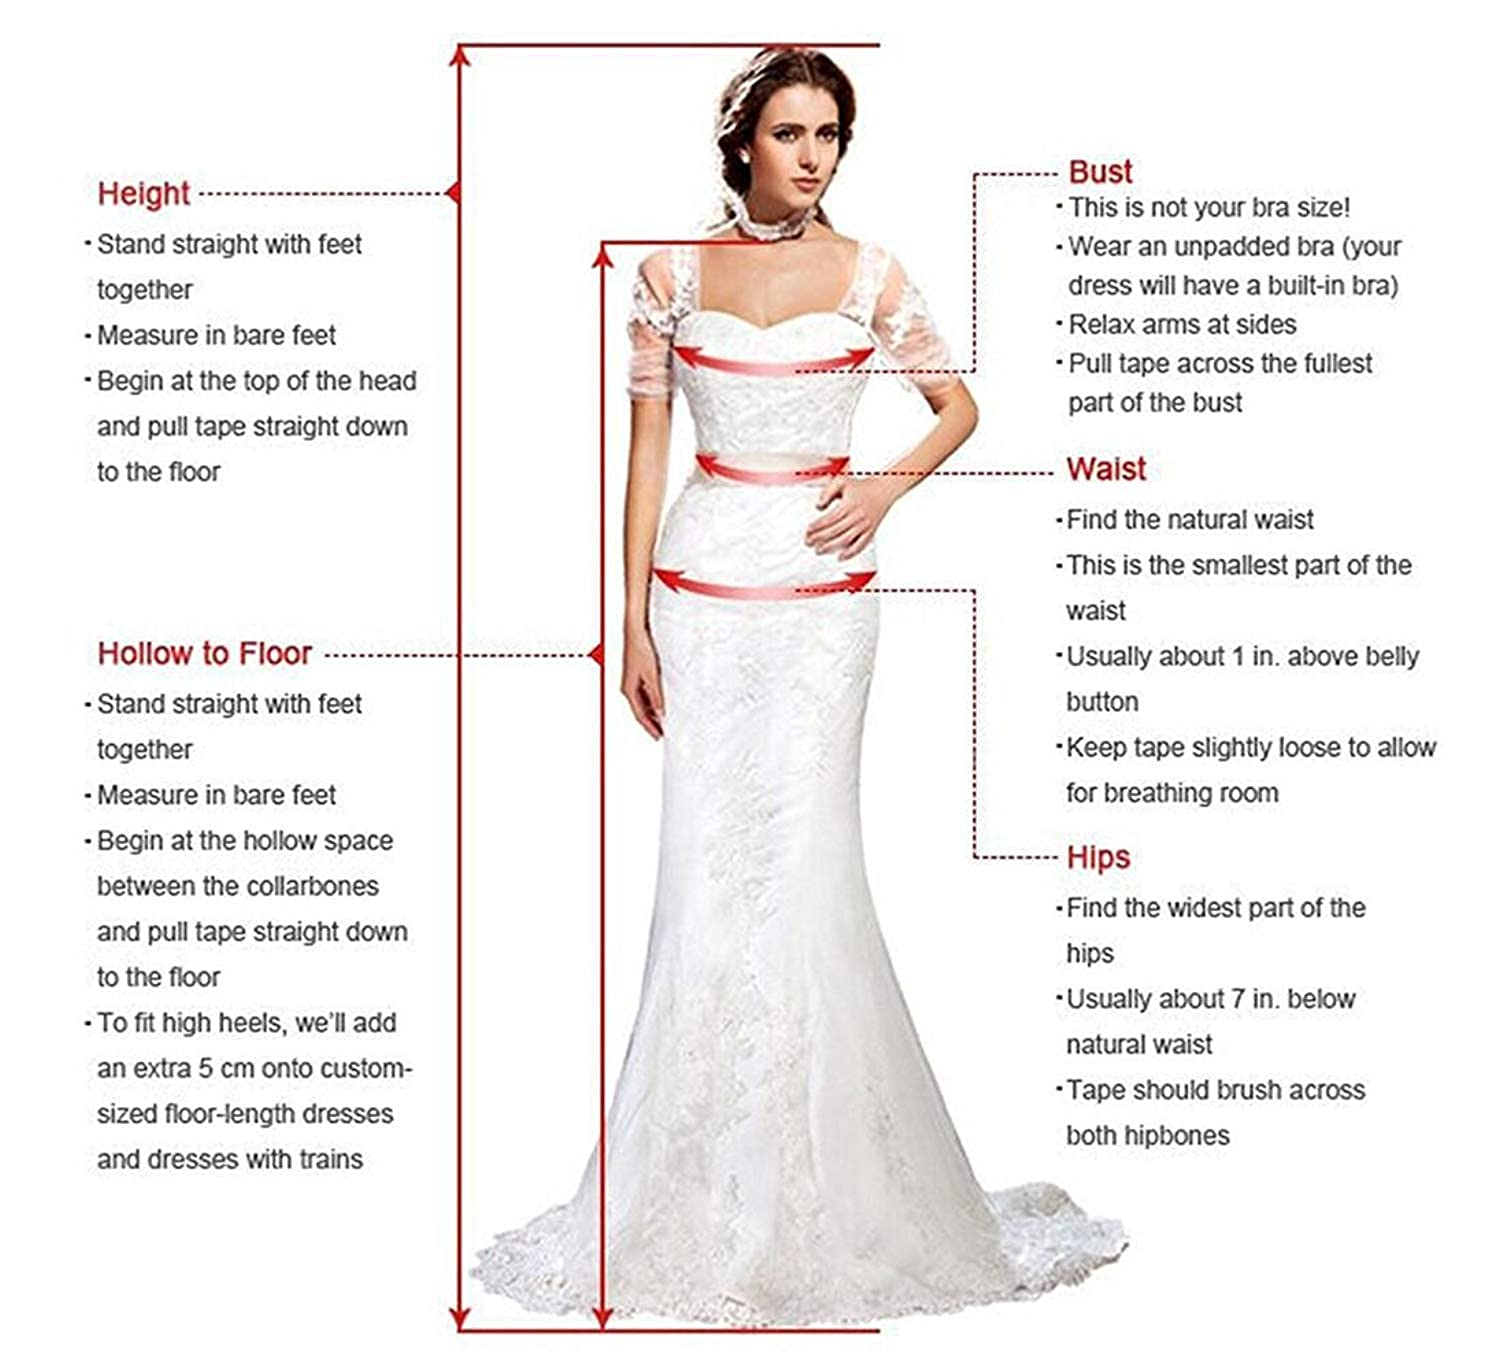 QueenBridal Womens Mermaid Wedding Dress Plus Size Wedding Gowns for Bride Cap Sleeve Beaded Bridal Gowns QU62